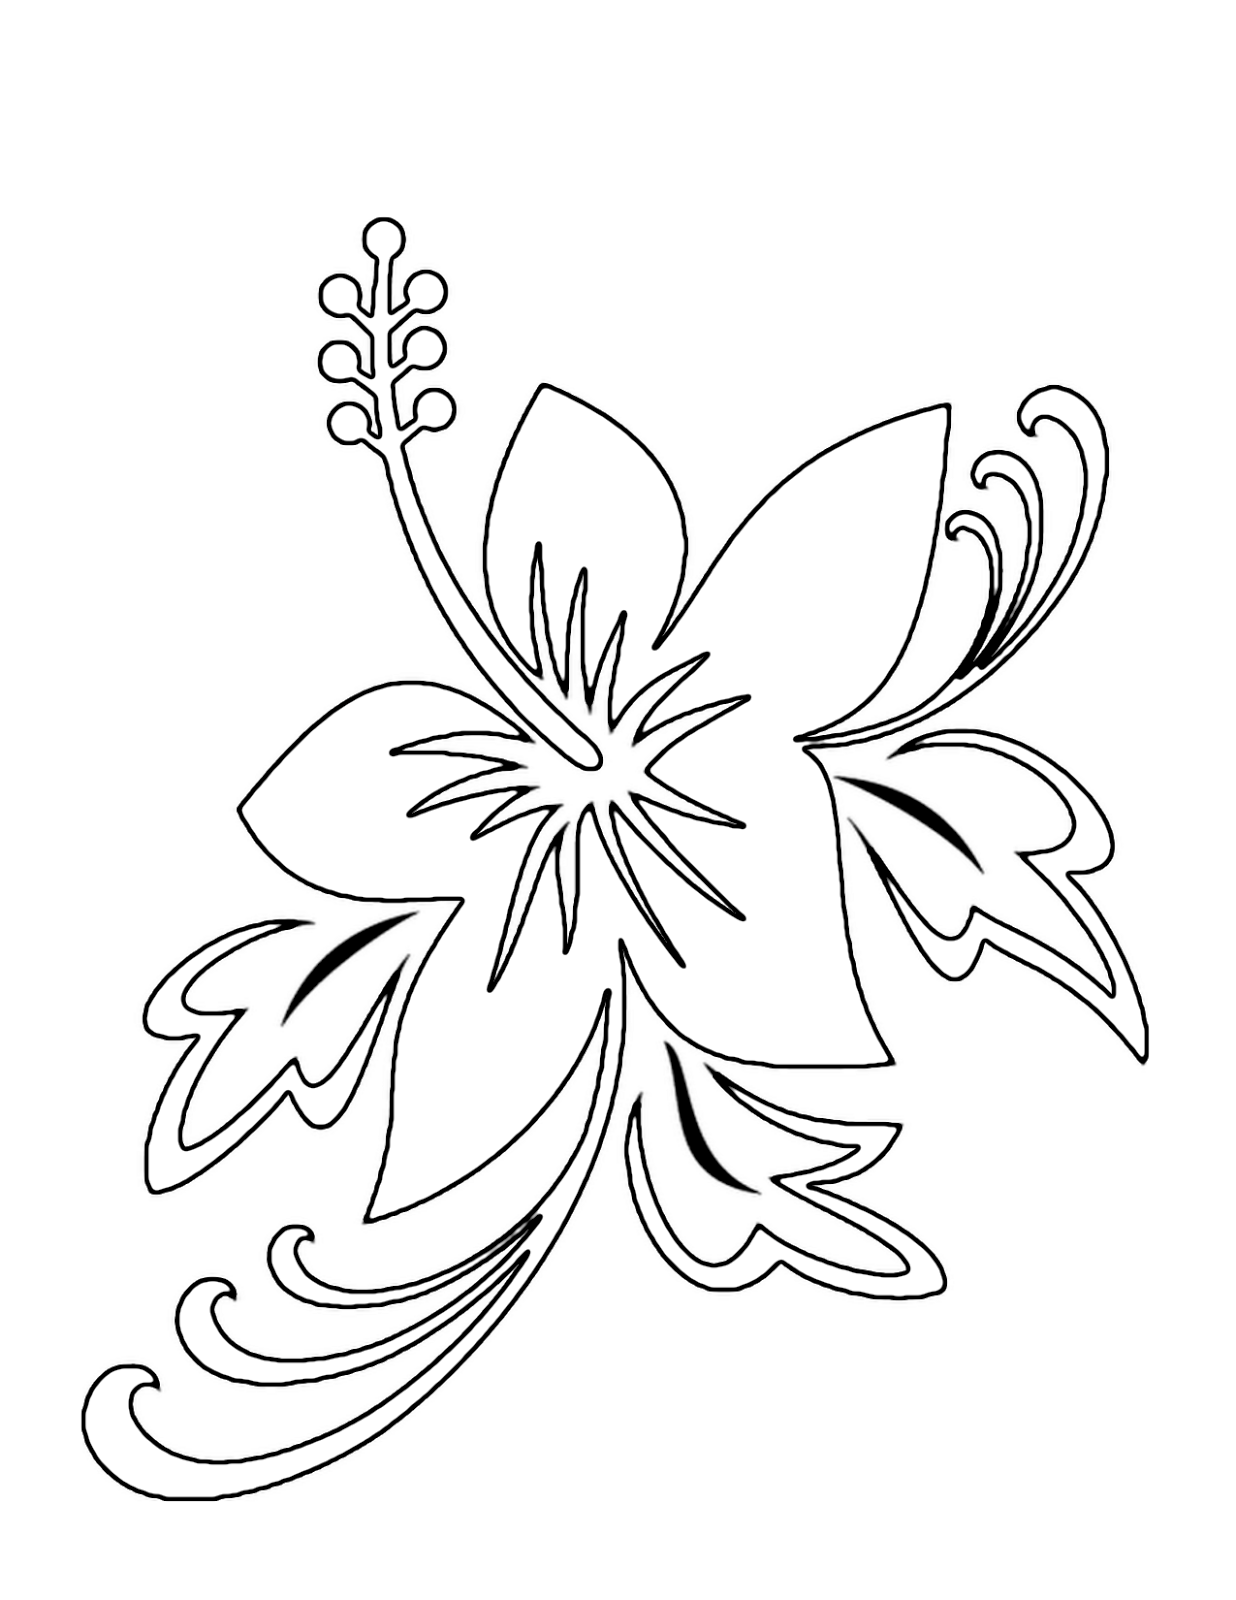 printable flower coloring pages for adults - Free colouring pages for adults Mum In The Madhouse